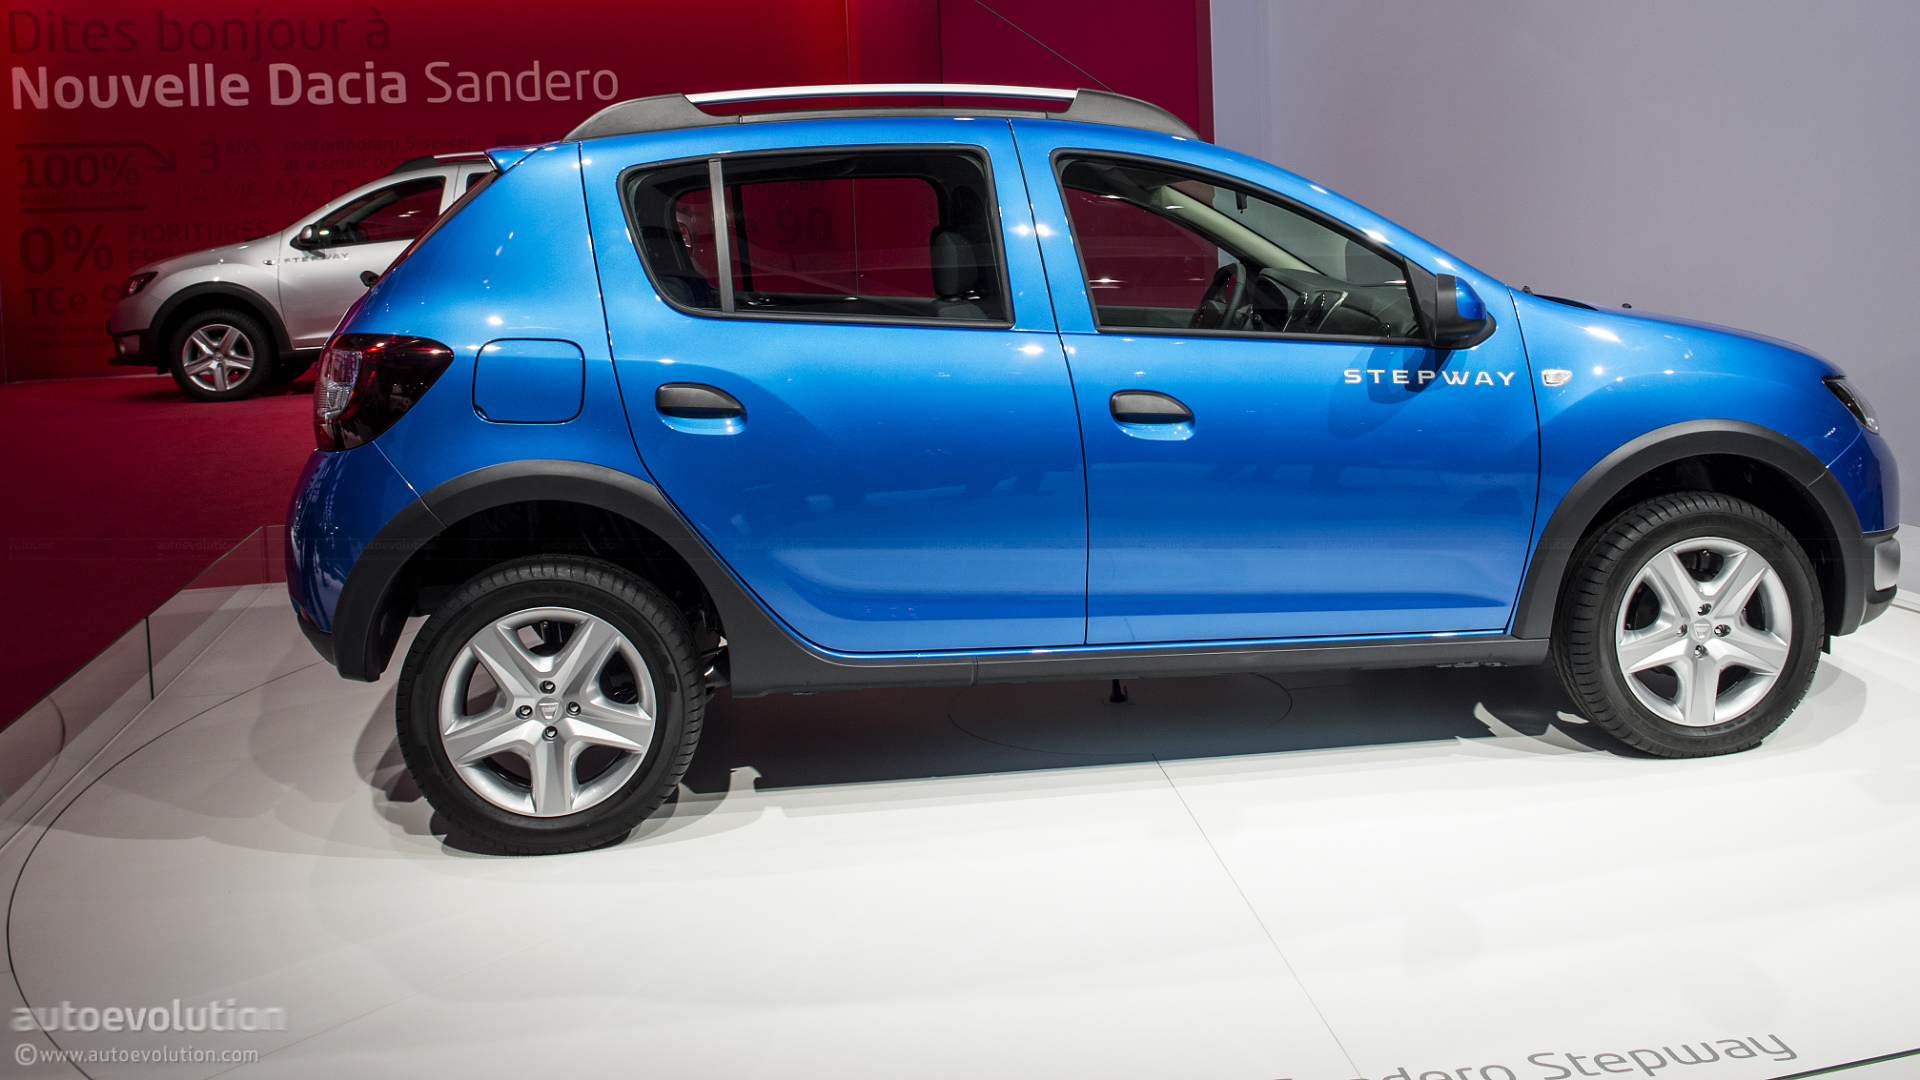 paris 2012 dacia sandero stepway live photos. Black Bedroom Furniture Sets. Home Design Ideas